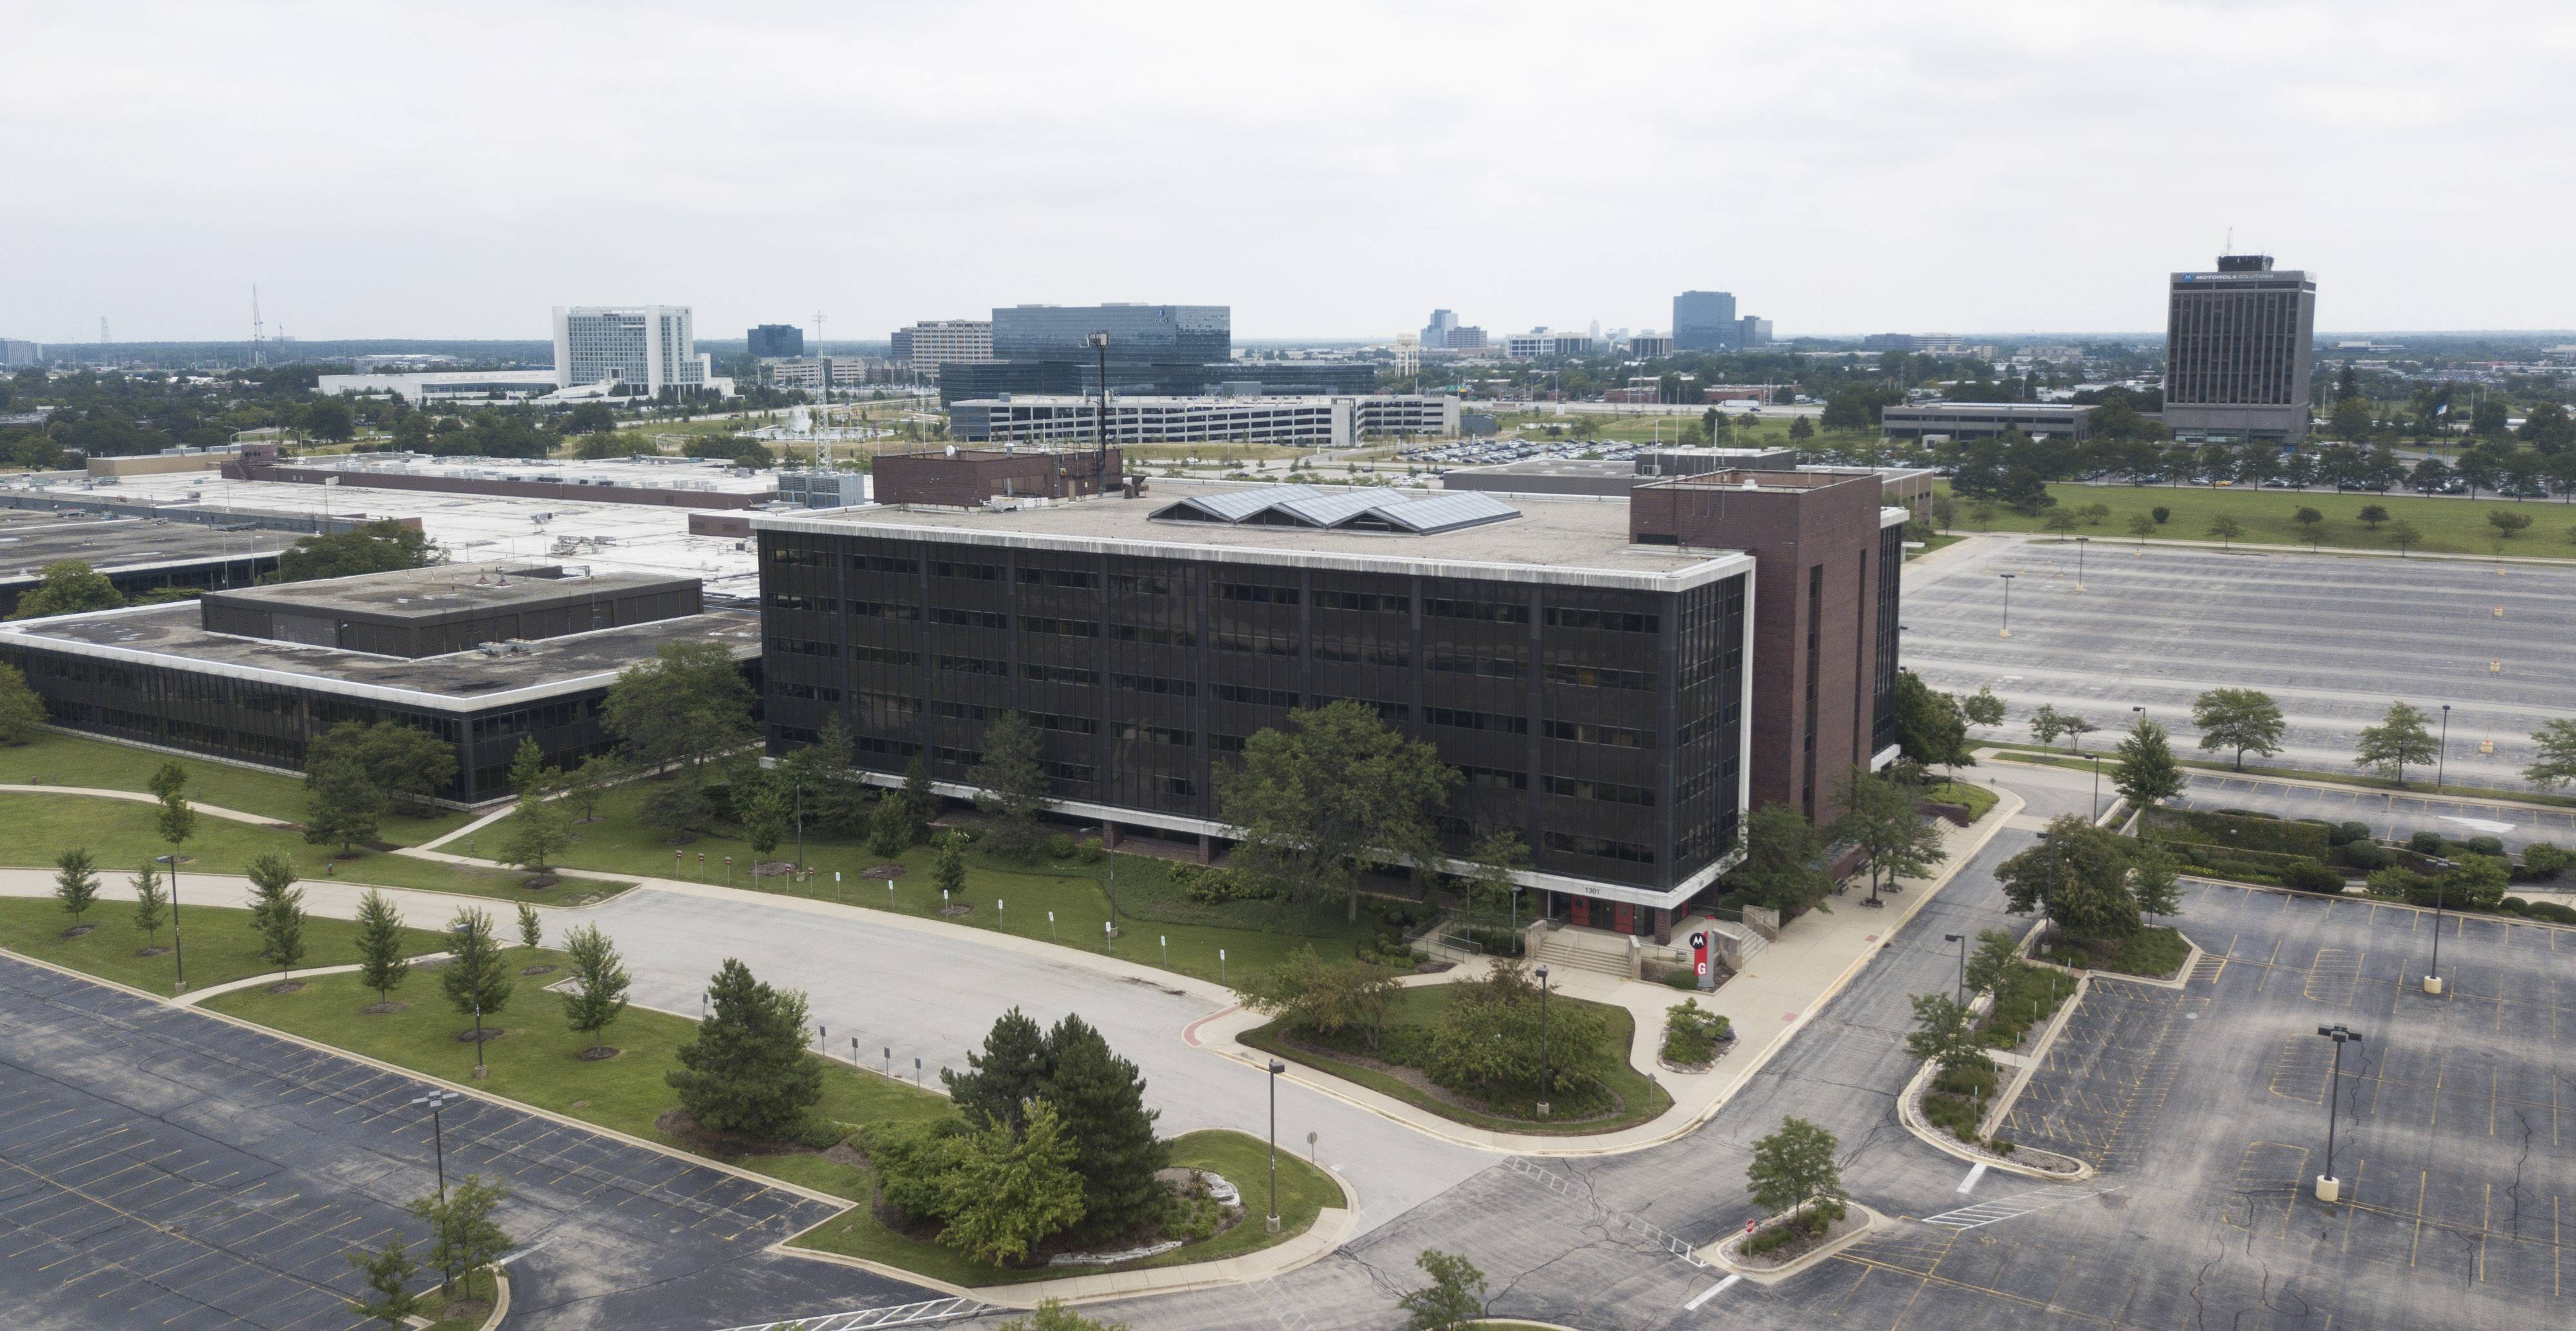 Early plans for the redevelopment of the former Motorola Solutions campus in Schaumburg suggest new residential buildings along Algonquin Road in Palatine Township Elementary District 15 and Palatine-Schaumburg High School District 211.